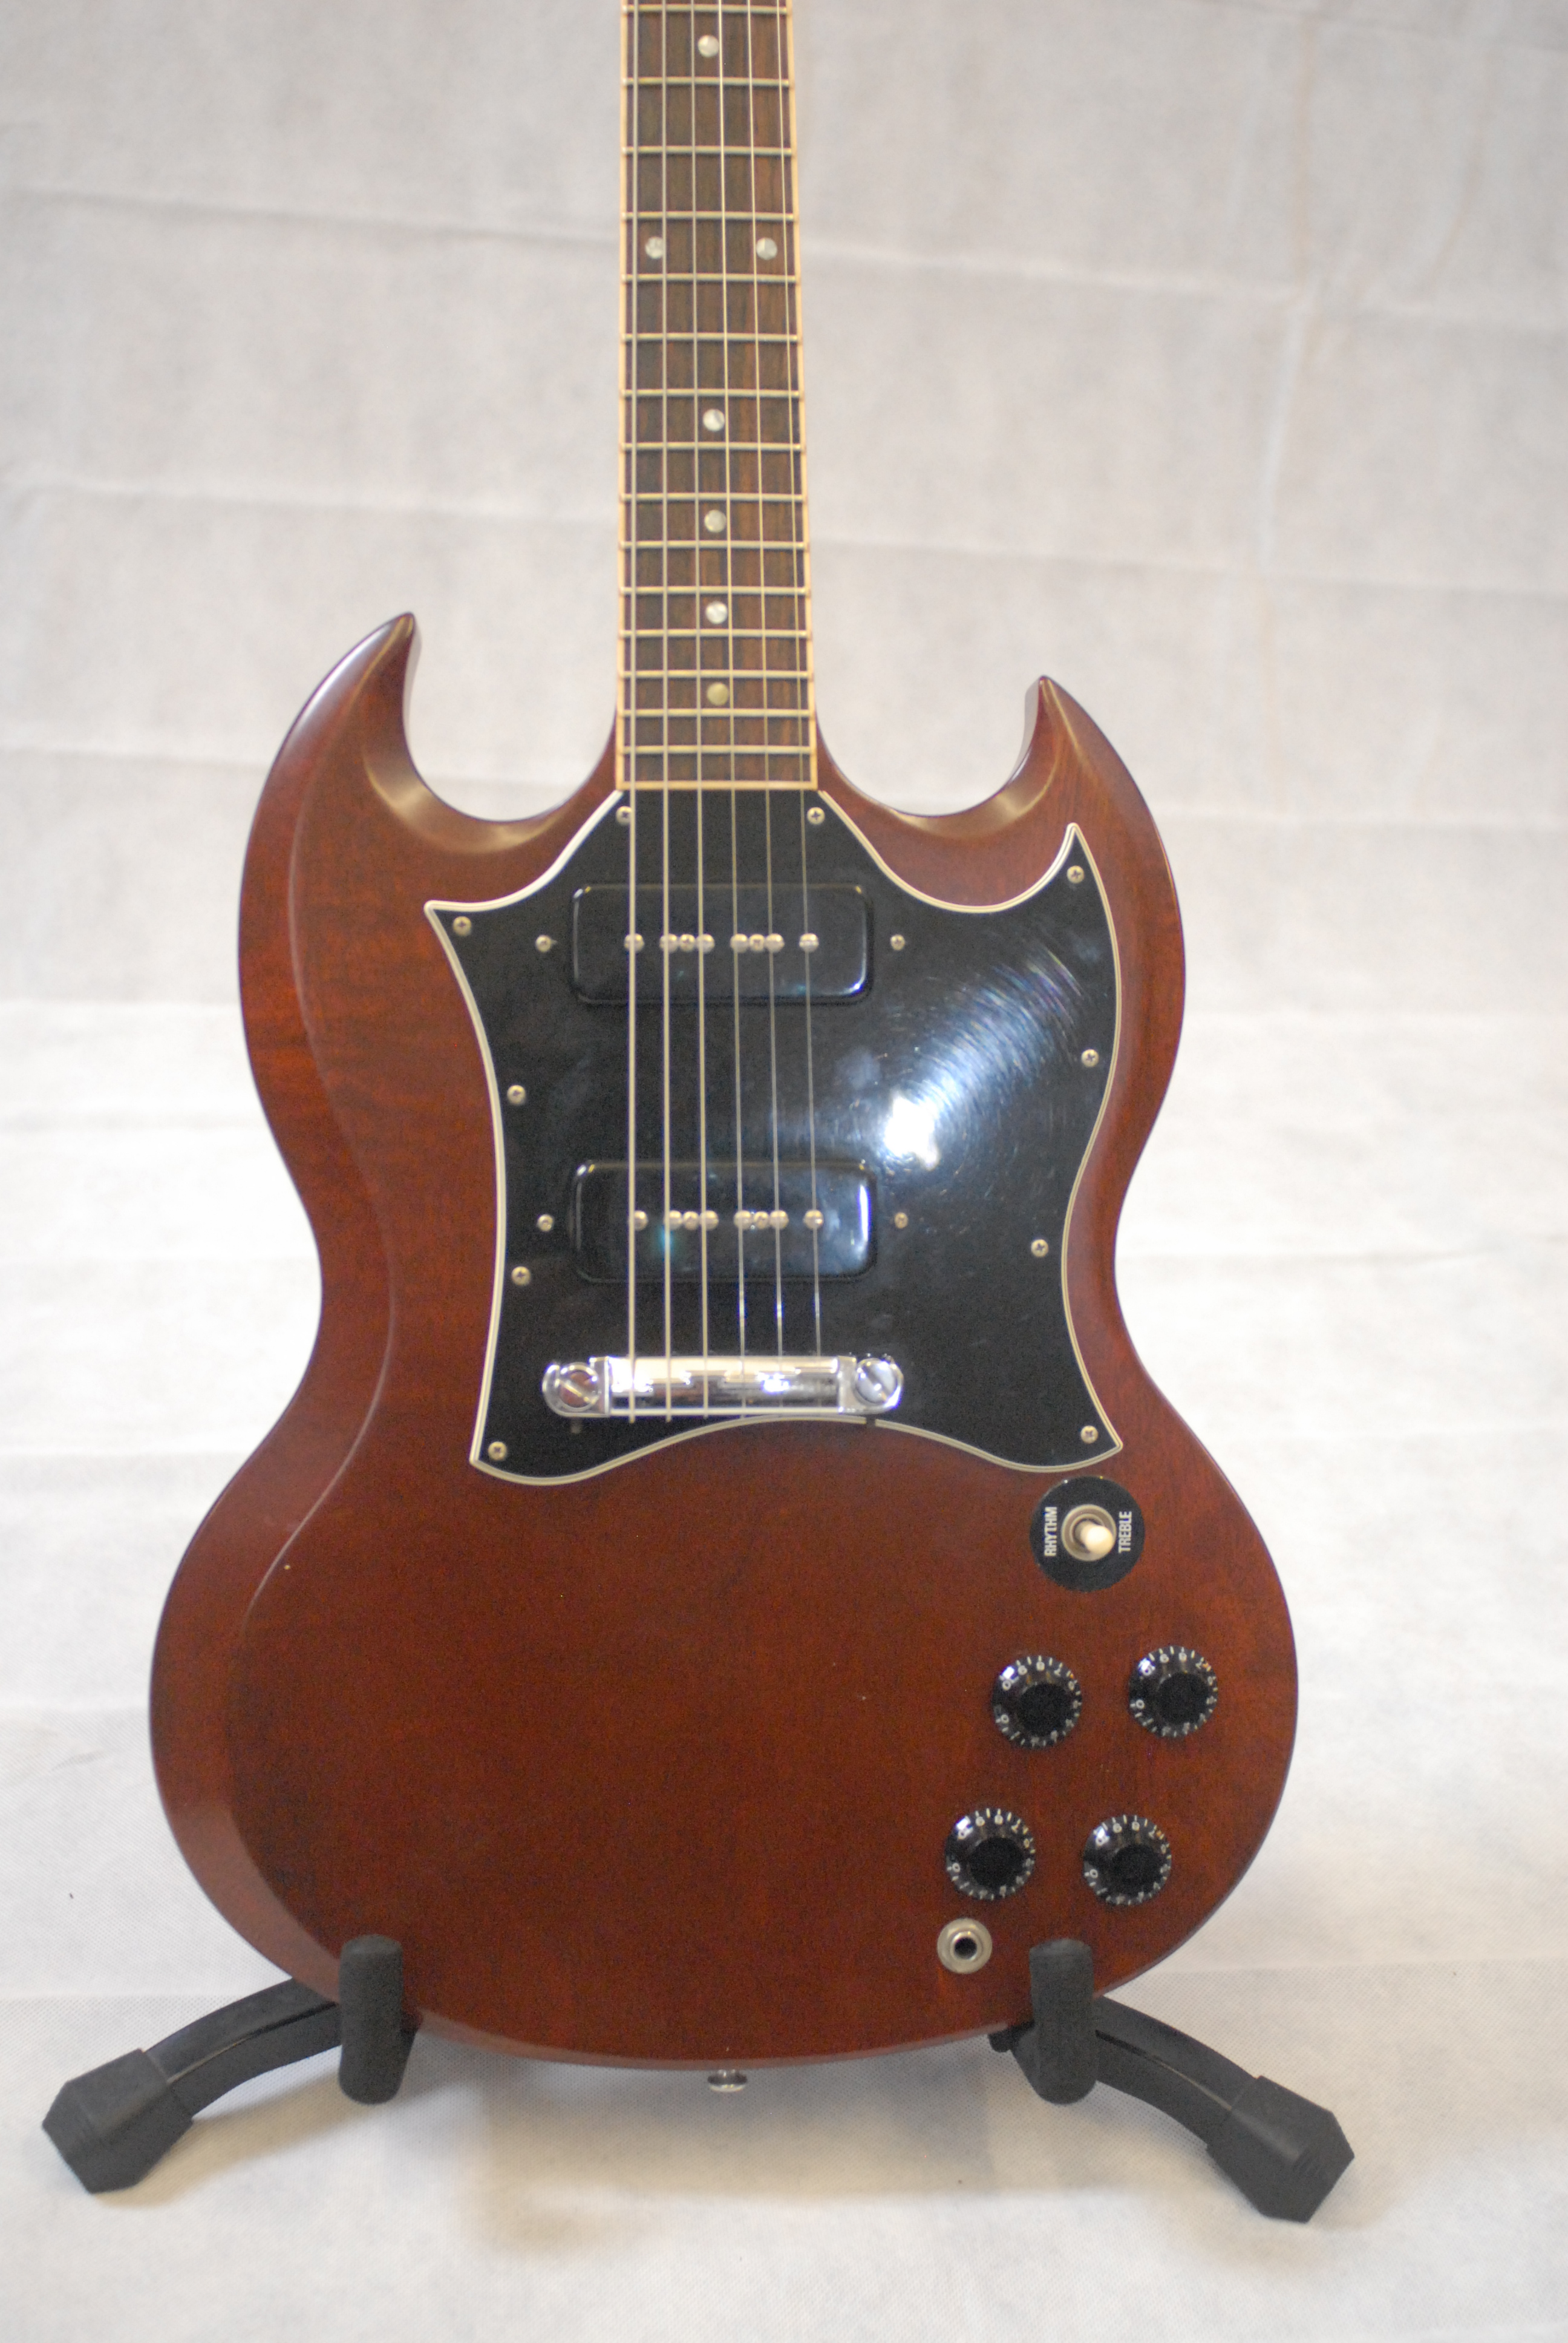 Gibson Guitars For Sale >> 2001 Gibson SG Special Pete Townshend Signature Guitar ...